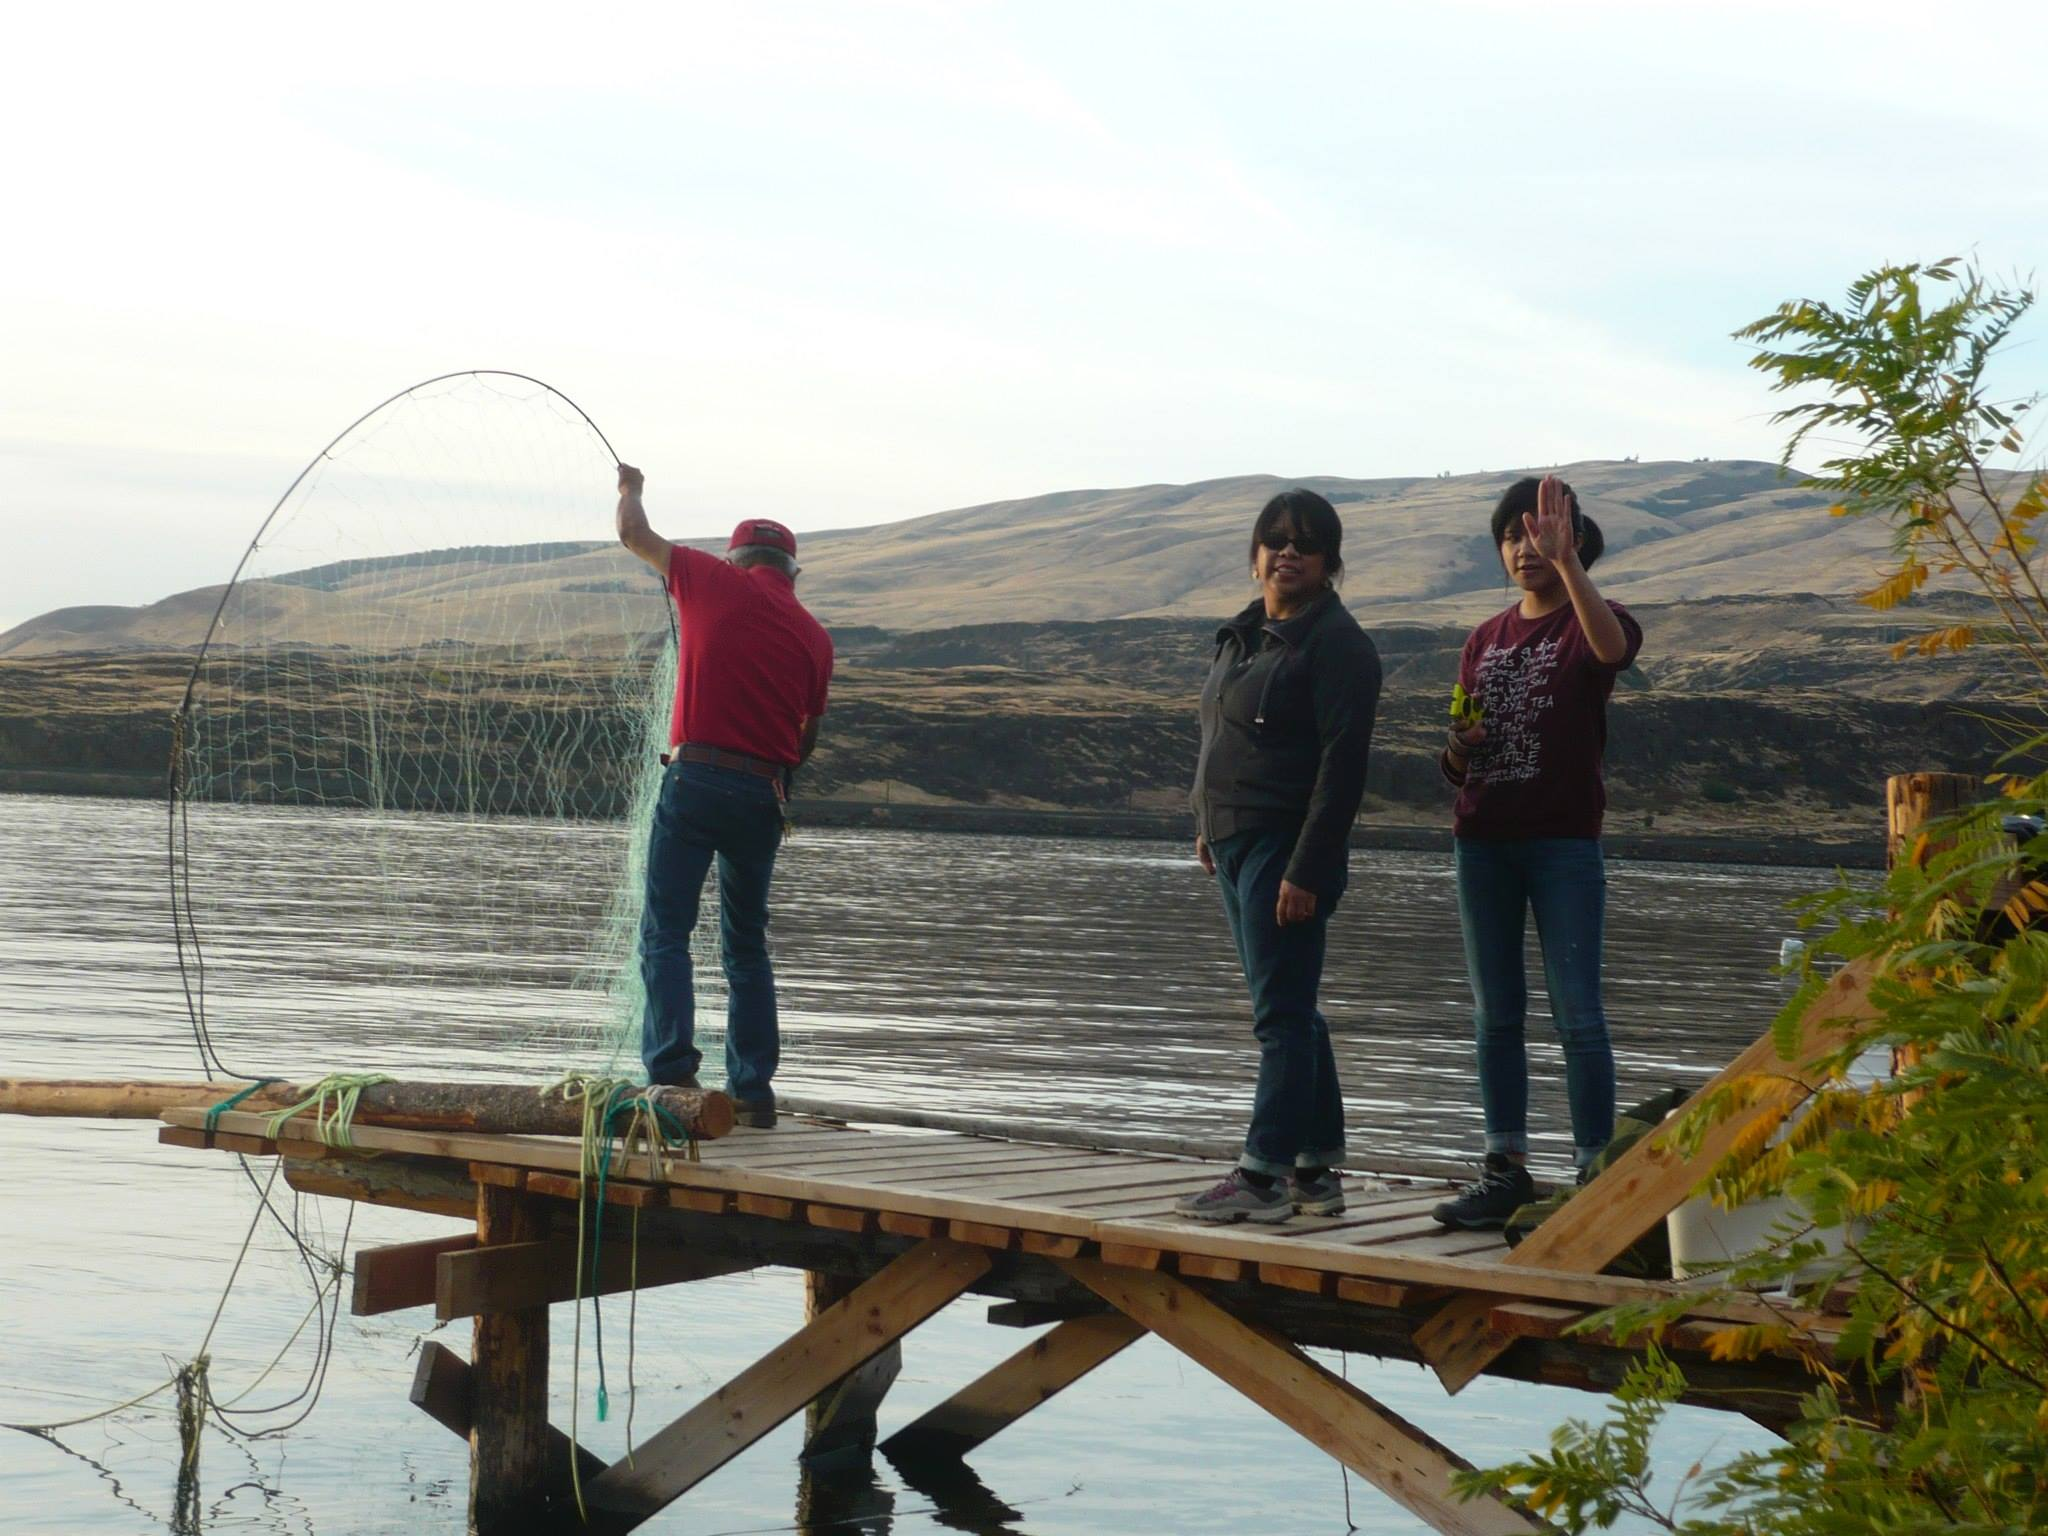 Fishing on scaffold above The Dalles Dam on the Columbia River.